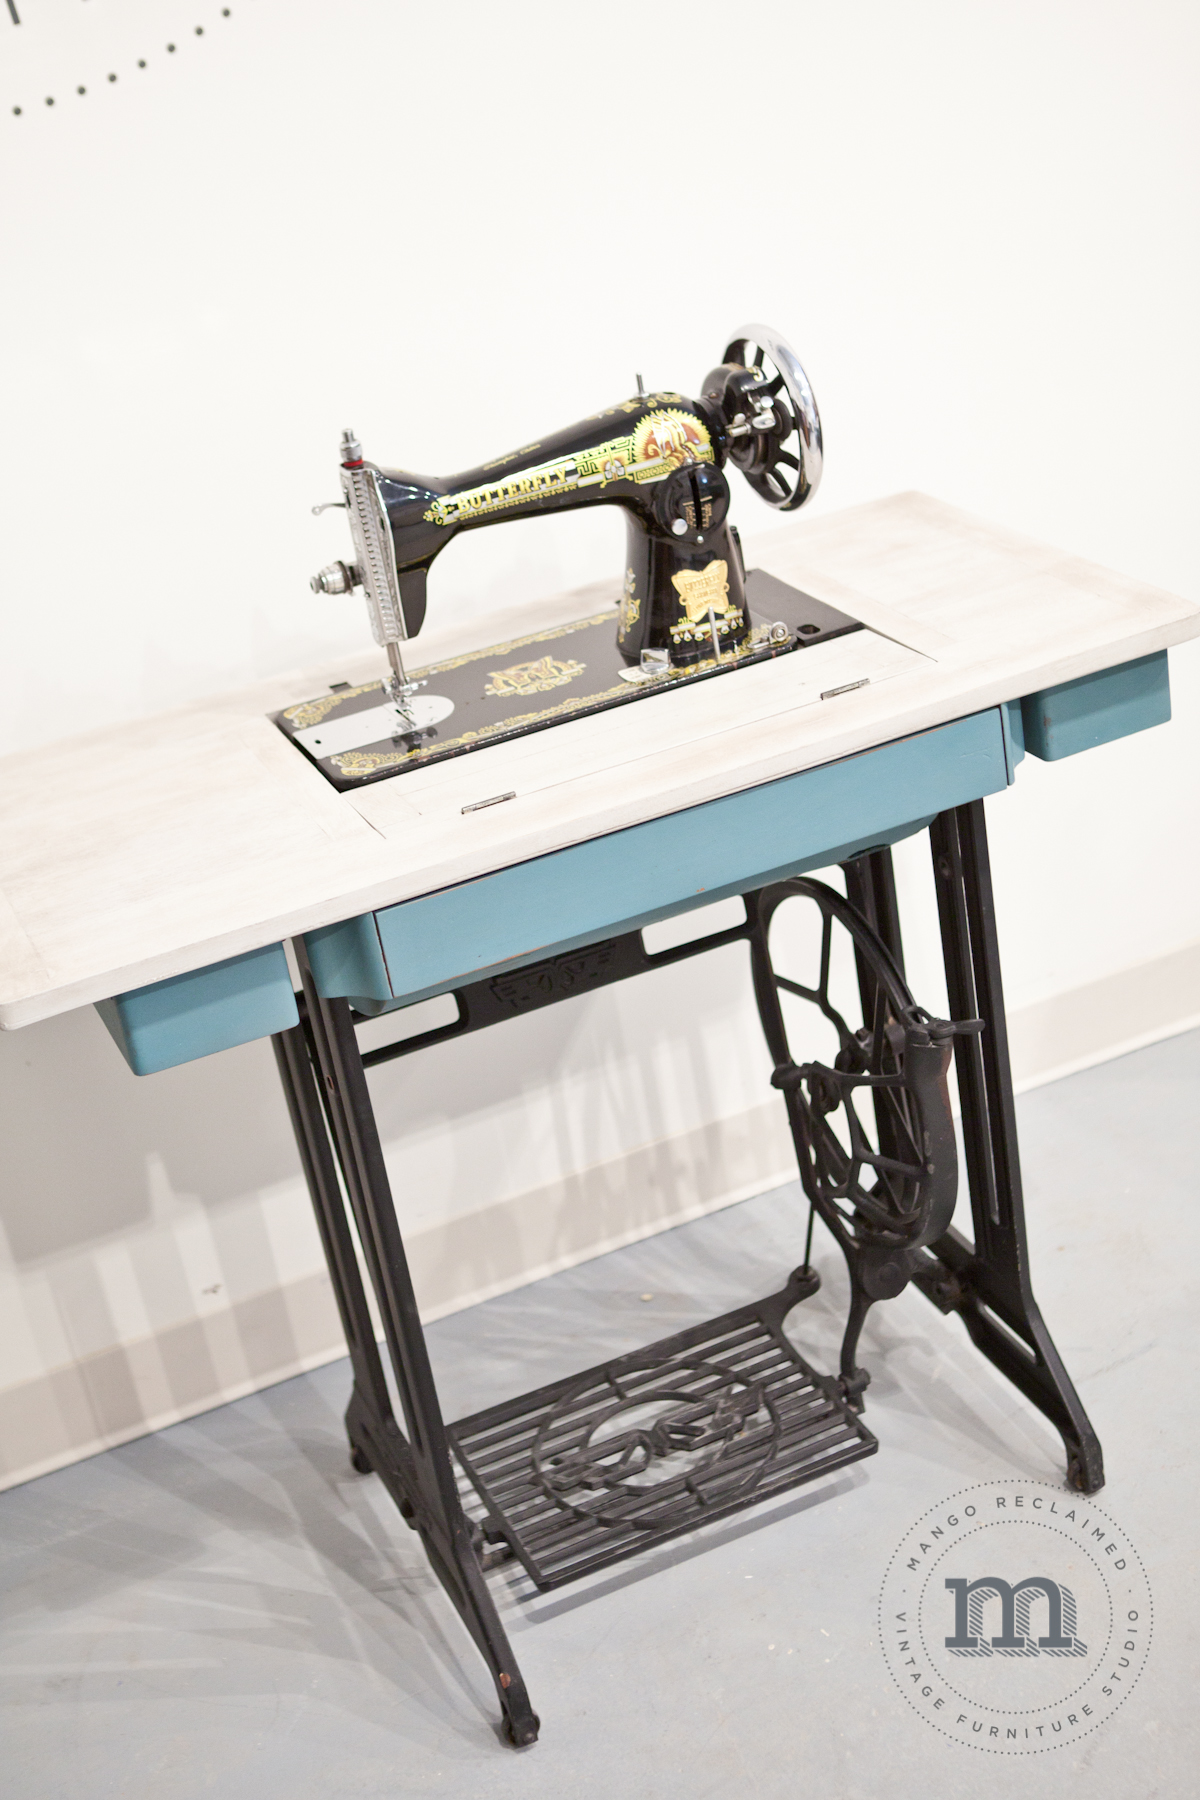 The sewing machine sitting on the table is a great conversation piece and can be tucked away discreetly when the table top is needed for entertaining. A beautiful piece that is truly multi-functional AND holds great sentimental value.